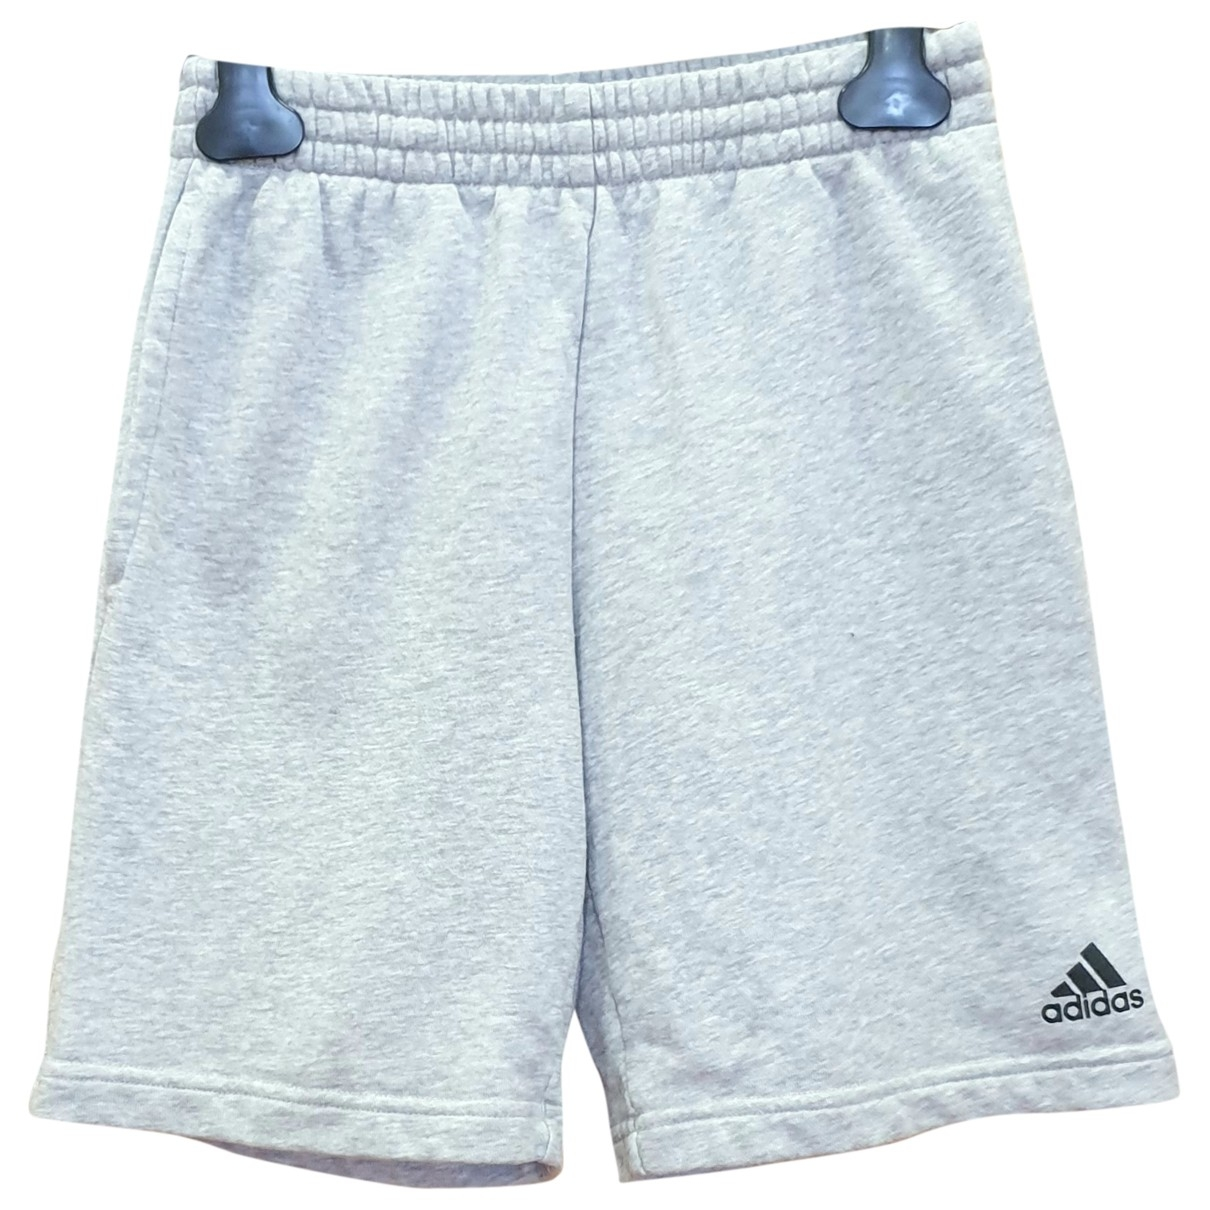 Adidas \N Grey Cotton Shorts for Kids 12 years - XS FR